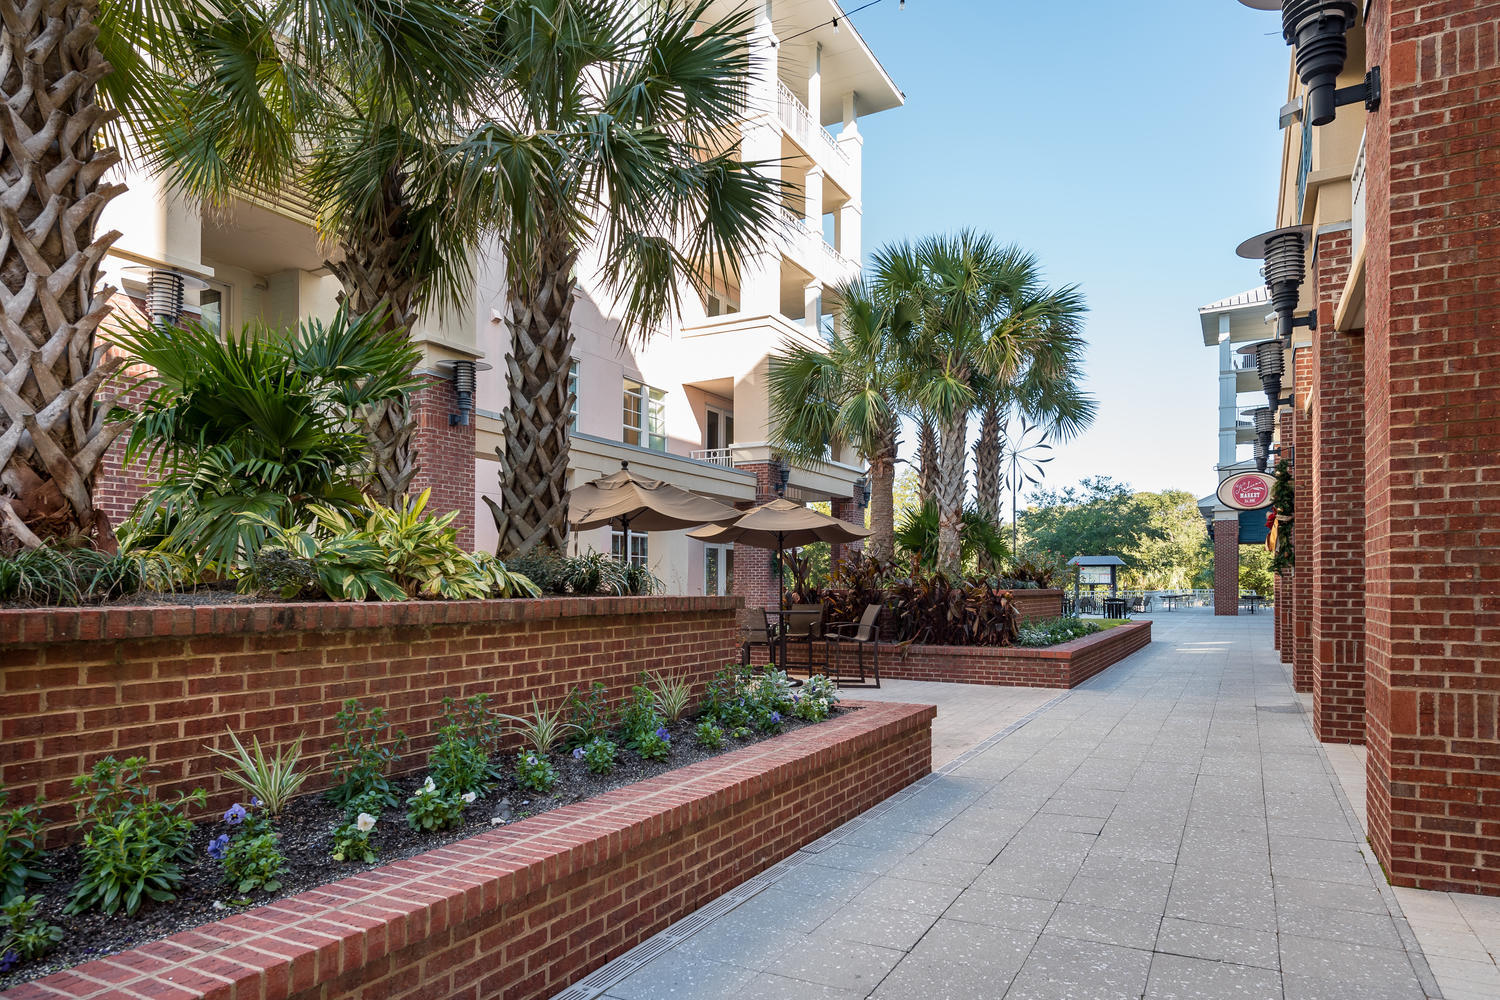 Wild Dunes Homes For Sale - 405/407 B Village At Wild Dunes, Isle of Palms, SC - 6